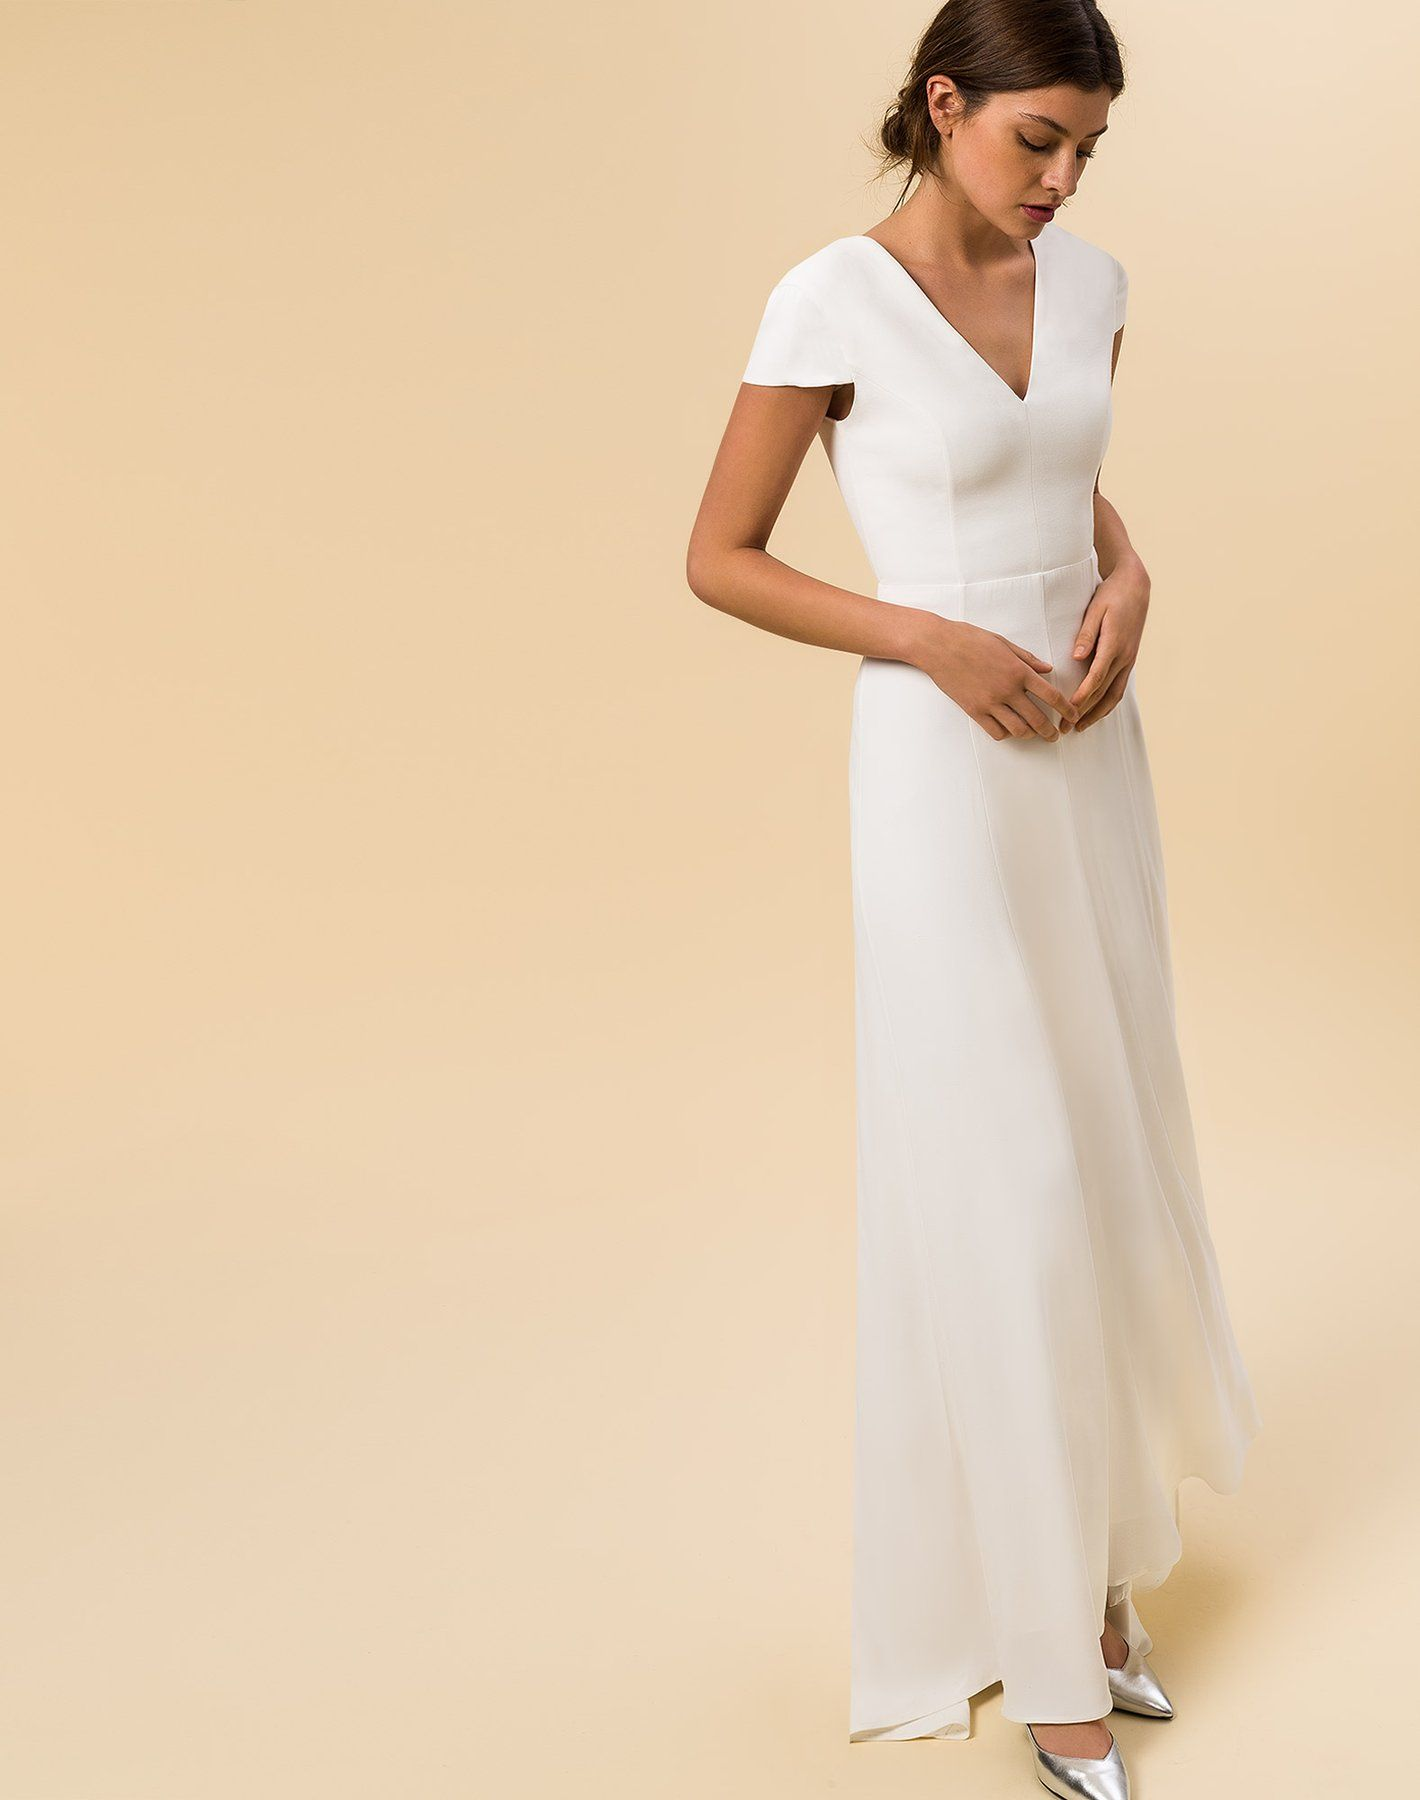 51f6a10e2af4 Bridal Cap Sleeve Dress in 2019 | Because we're getting married!